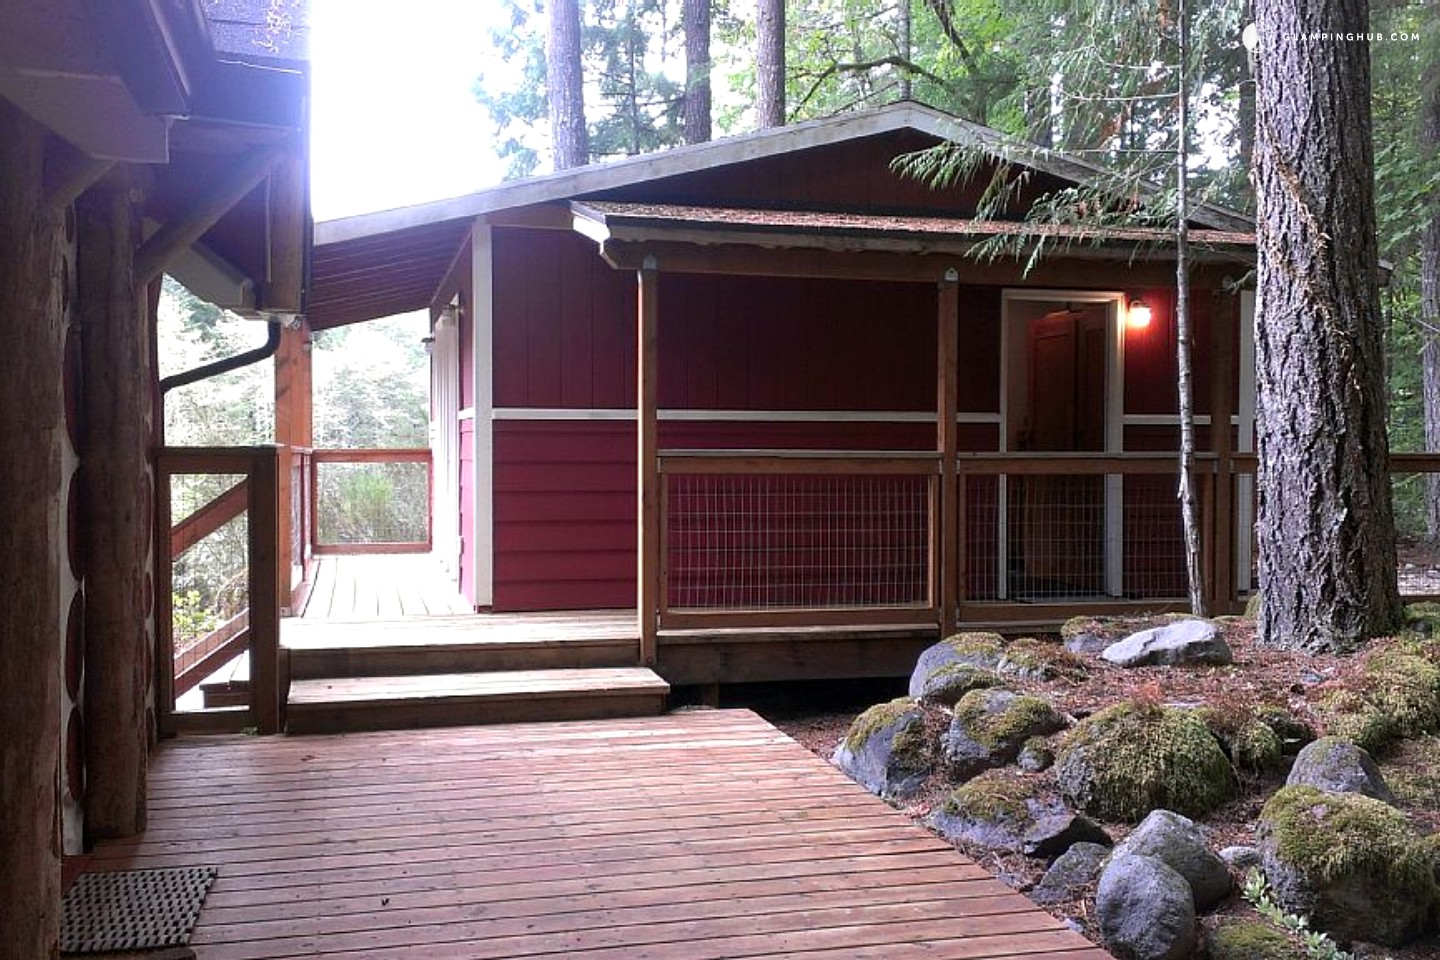 Secluded cabin rental near mt hood oregon for Romantic cabins oregon